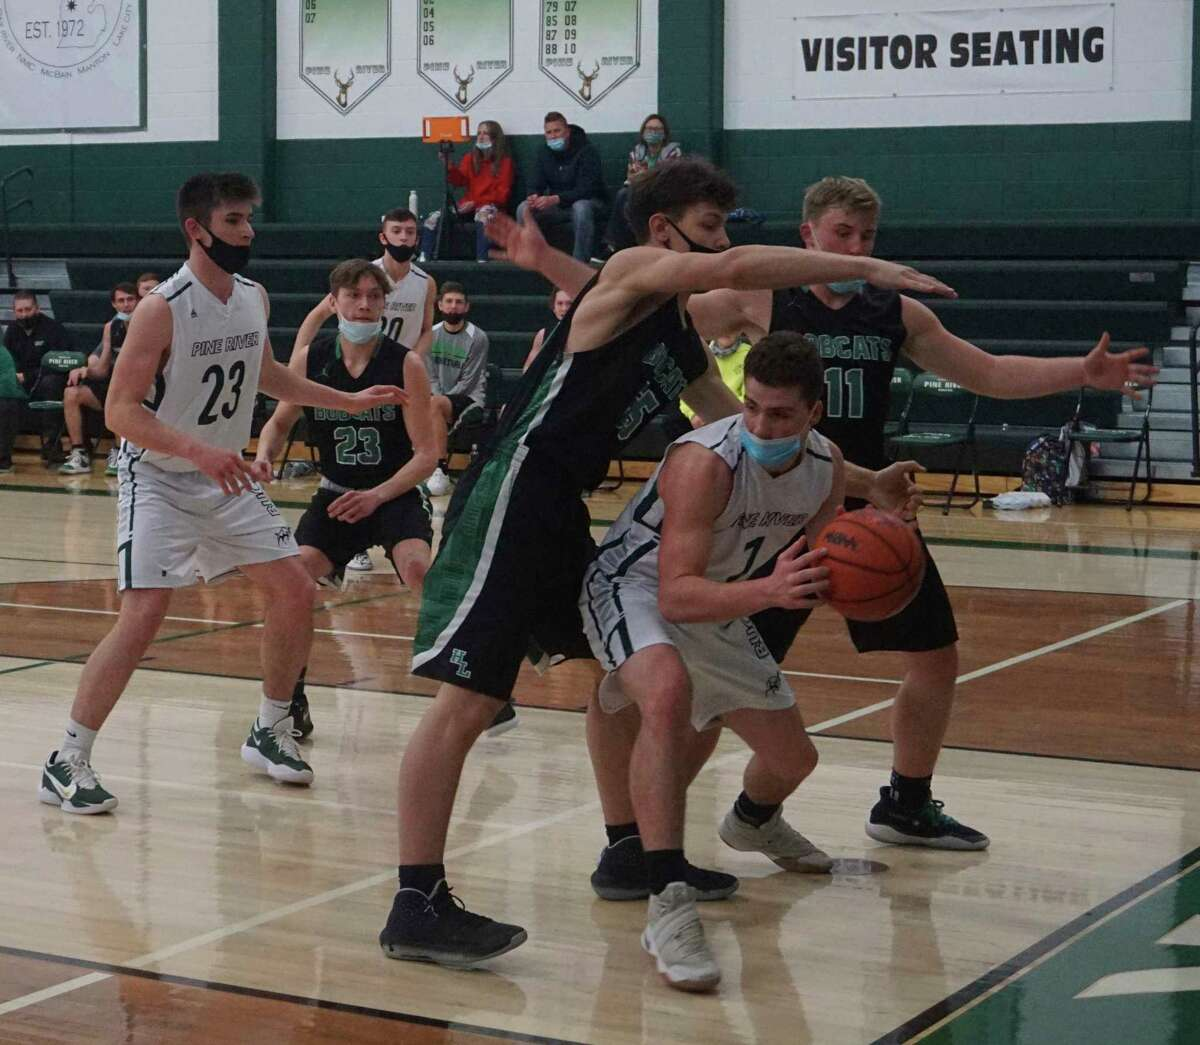 Senior Isaac McKinley, of Pine River, guards the ball whiledouble teamed along the baseline during PR's loss to Houghton Lake on Wednesday night. (Pioneer photo/Joe Judd)